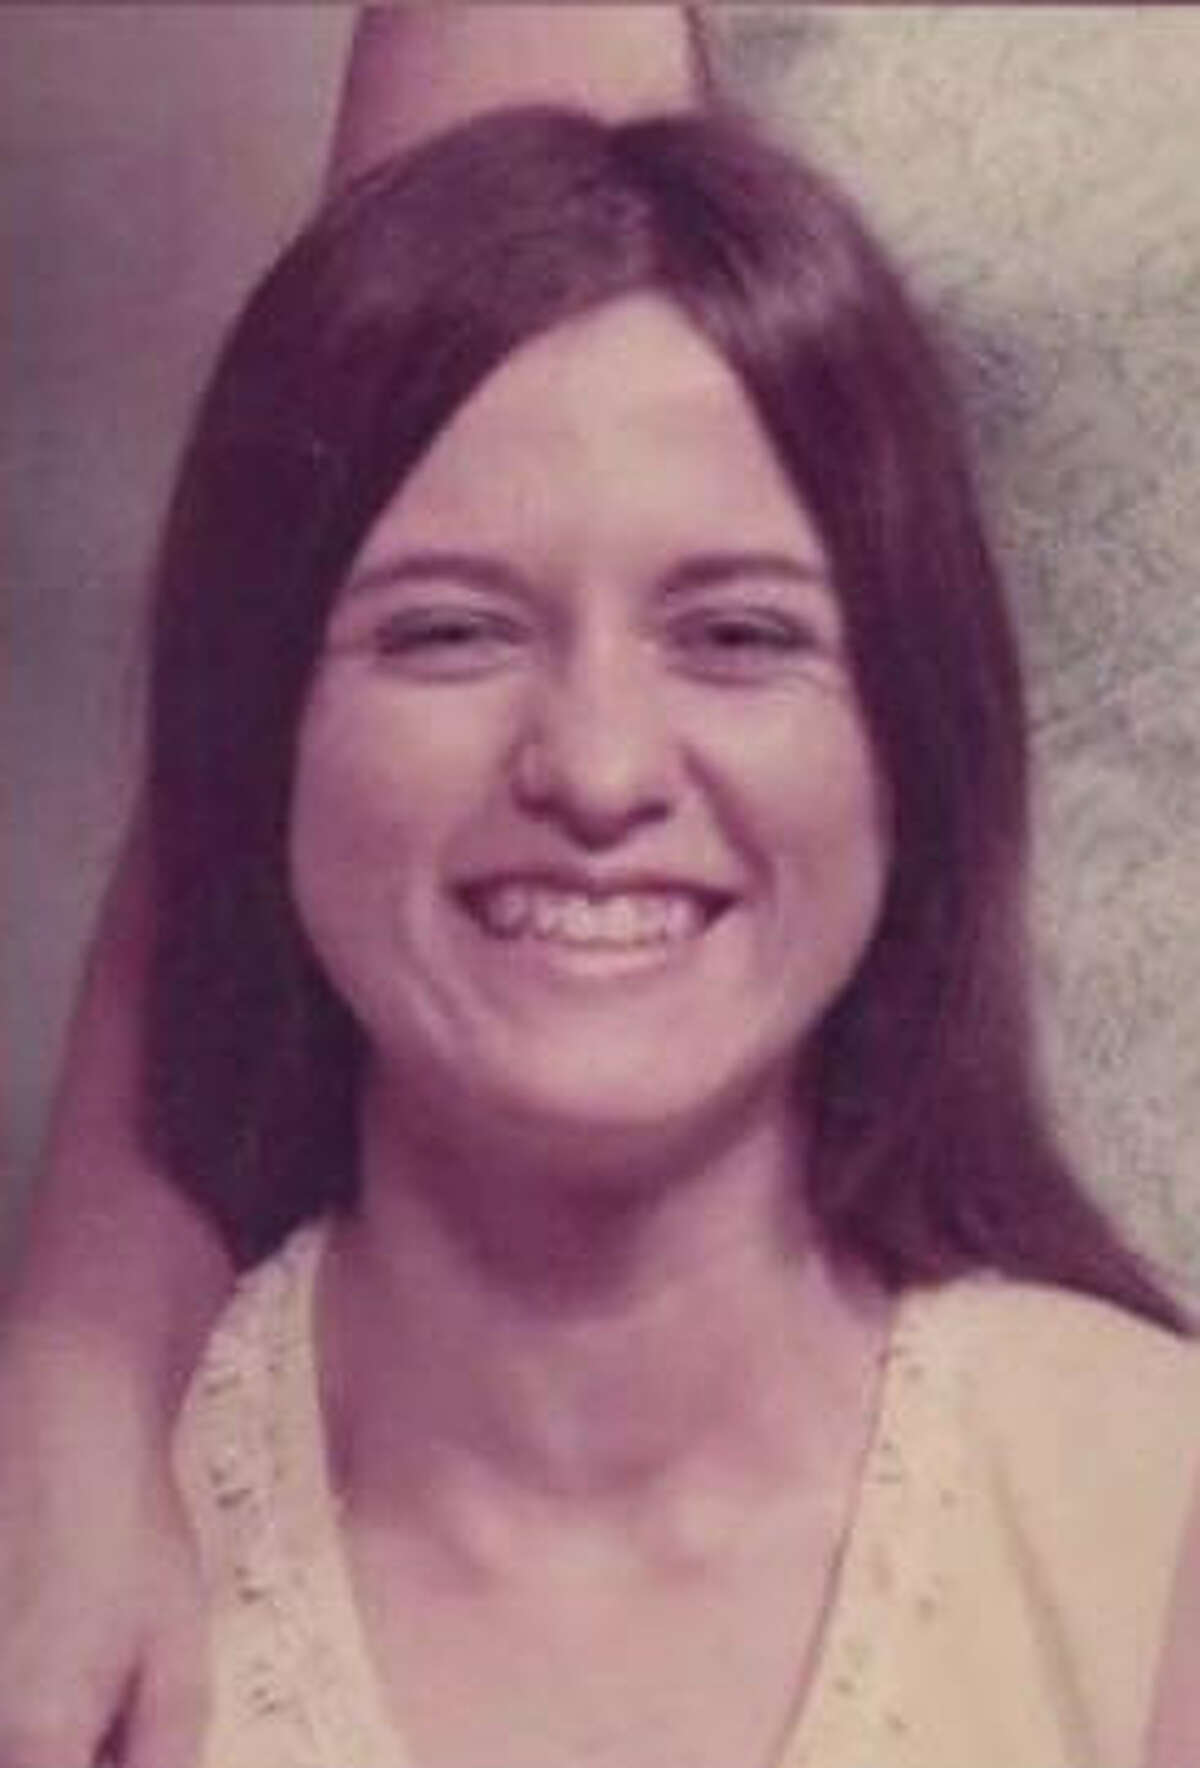 Texas woman vows to solve sister's cold case A Texas woman has vowed to solve the cold case of her sister's killing. Cheryl Lynn Springfield was found strangled to death at her home in Fort Worth on Christmas Day 1980. Her sister Jan Tunnell Webster, says she'll keep pressing until someone is punished for the slaying. Click through the gallery to see other unsolved mysteries.